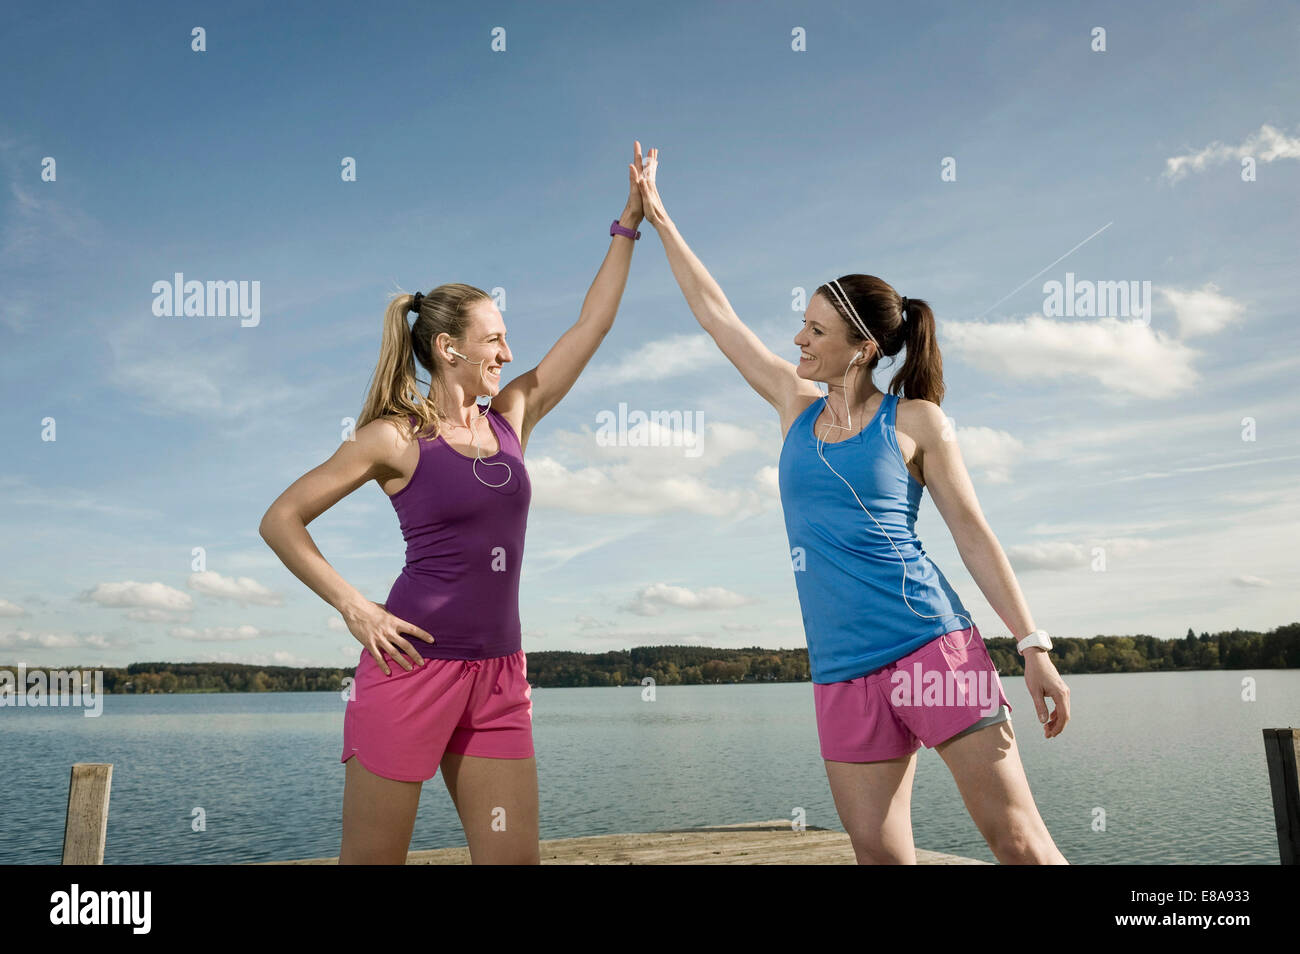 Jogging women giving high five, Woerthsee, Bavaria, Germany - Stock Image